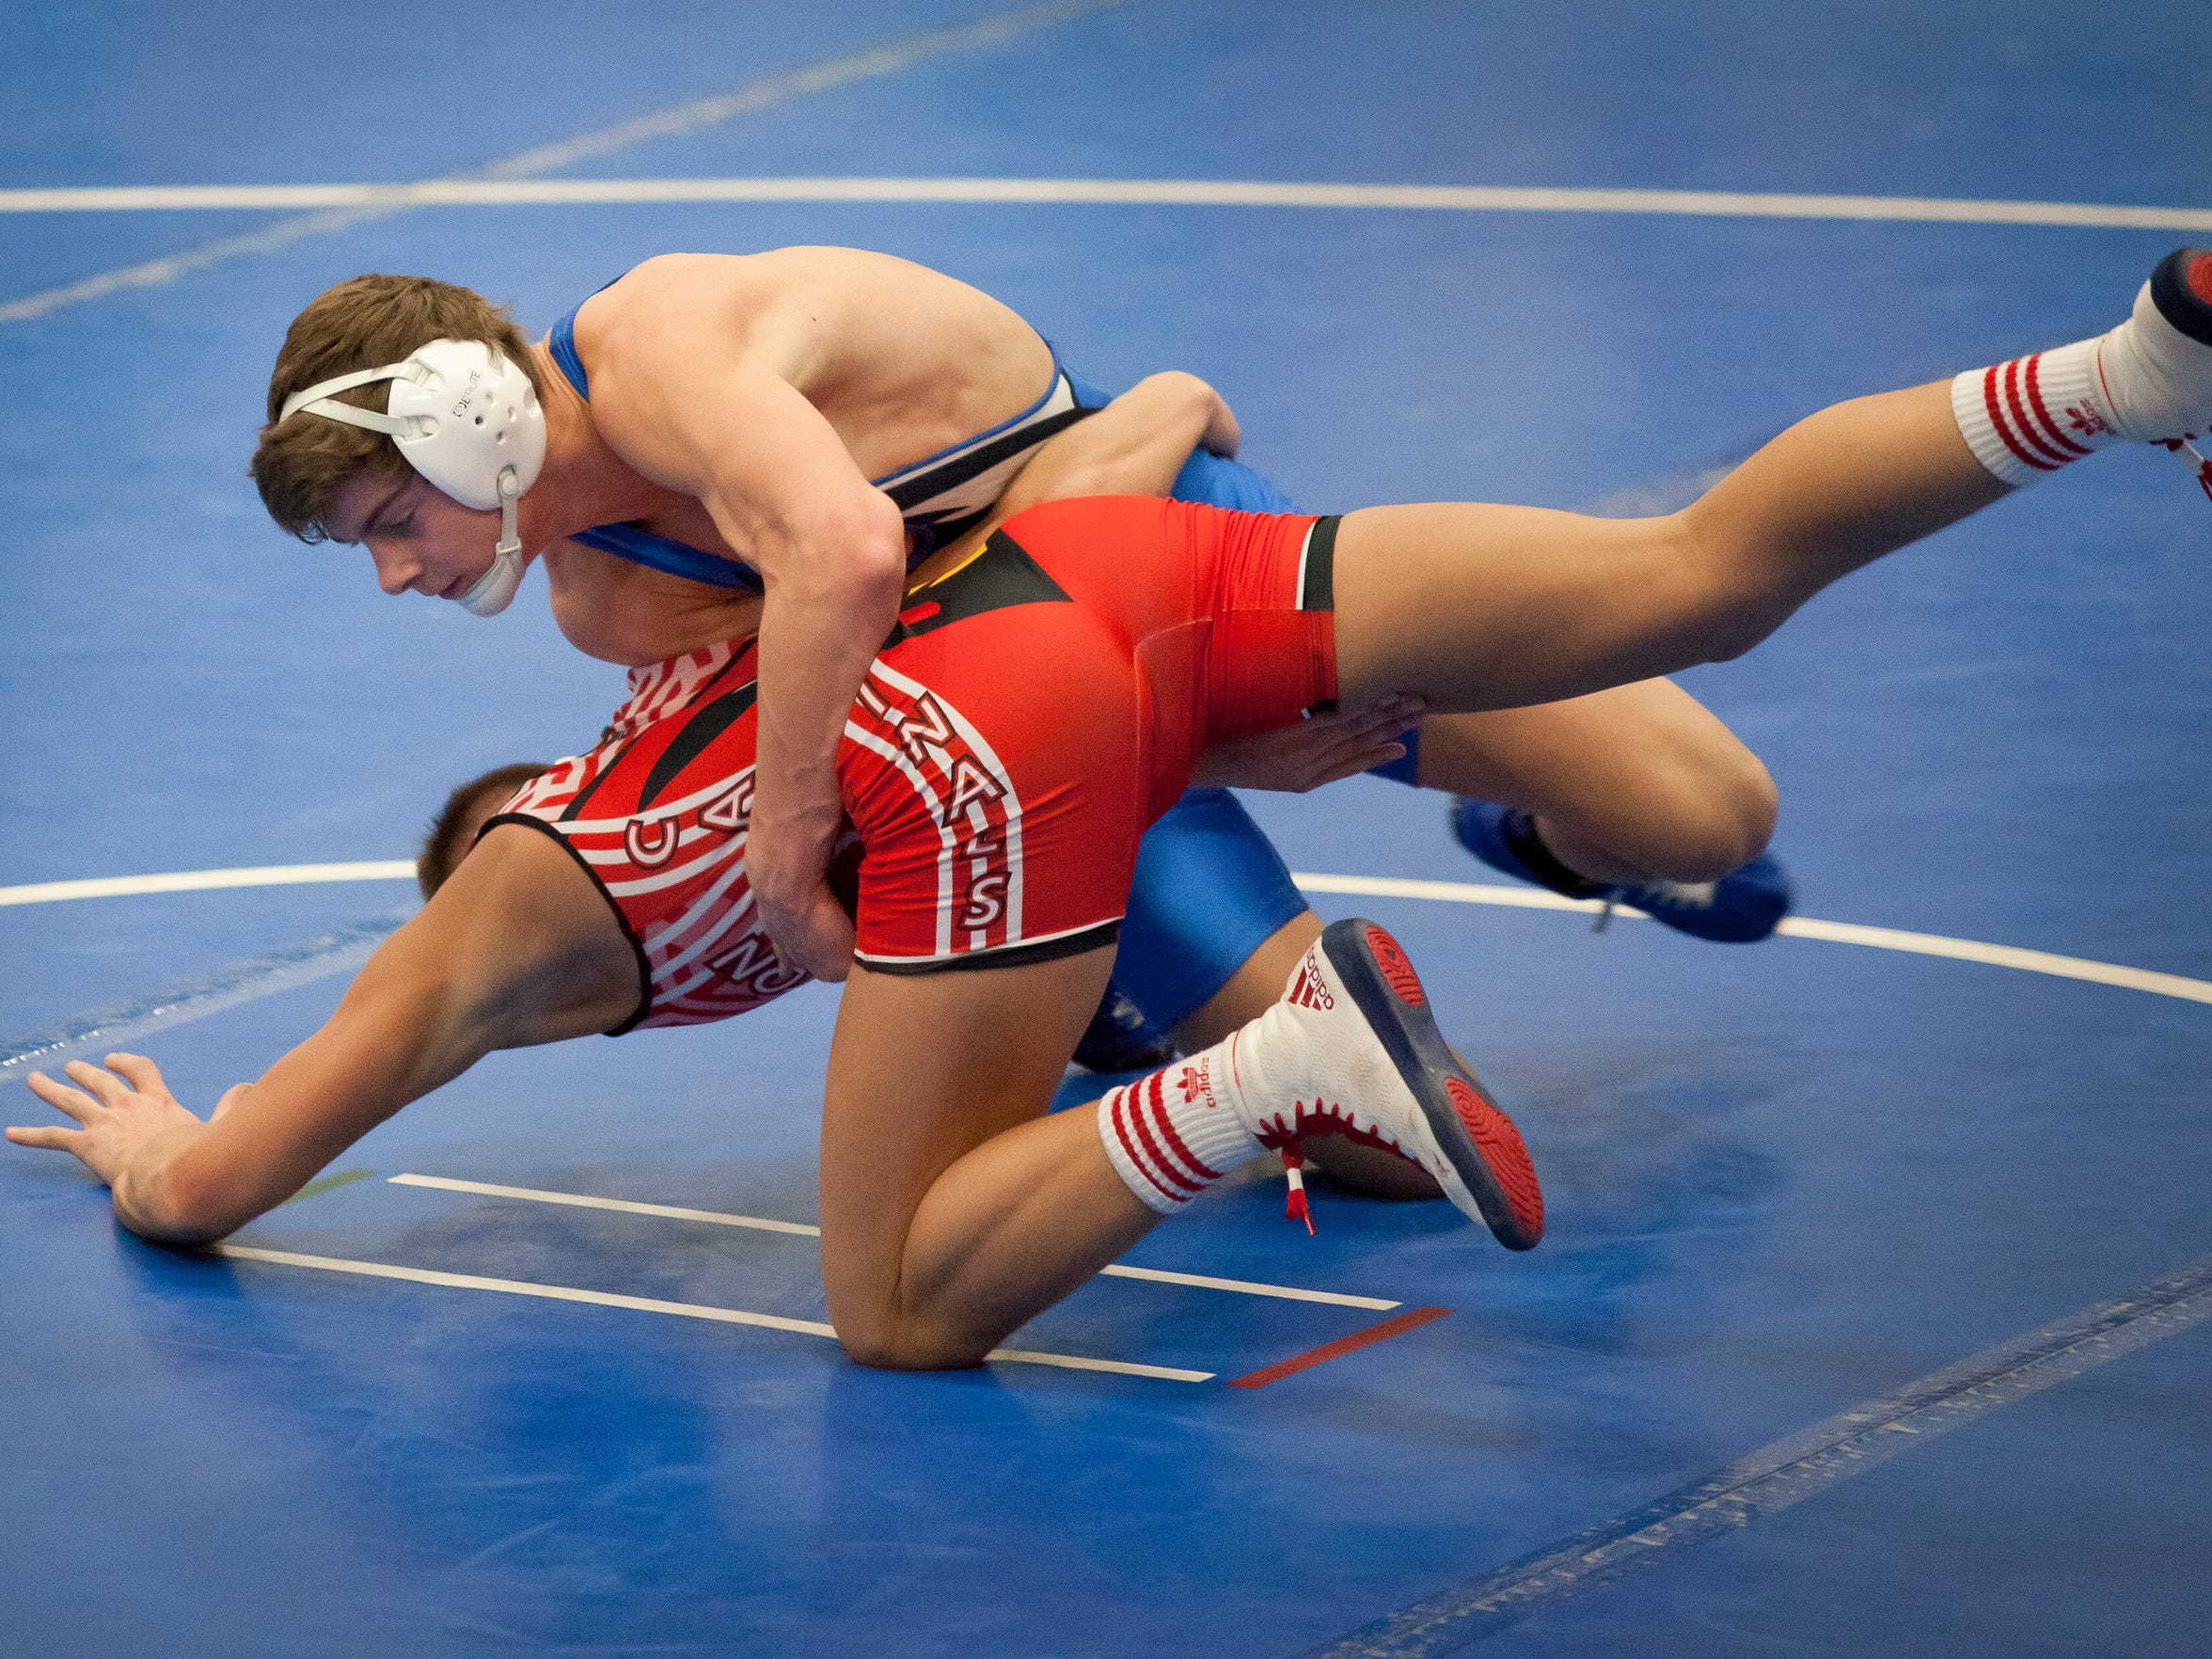 Cros-Lex's Colin Lieber wrestles Millington's Chandler Sweeney during a Division 3 wrestling meet Wednesday, Feb. 11, 2015 at Croswell-Lexington High School.